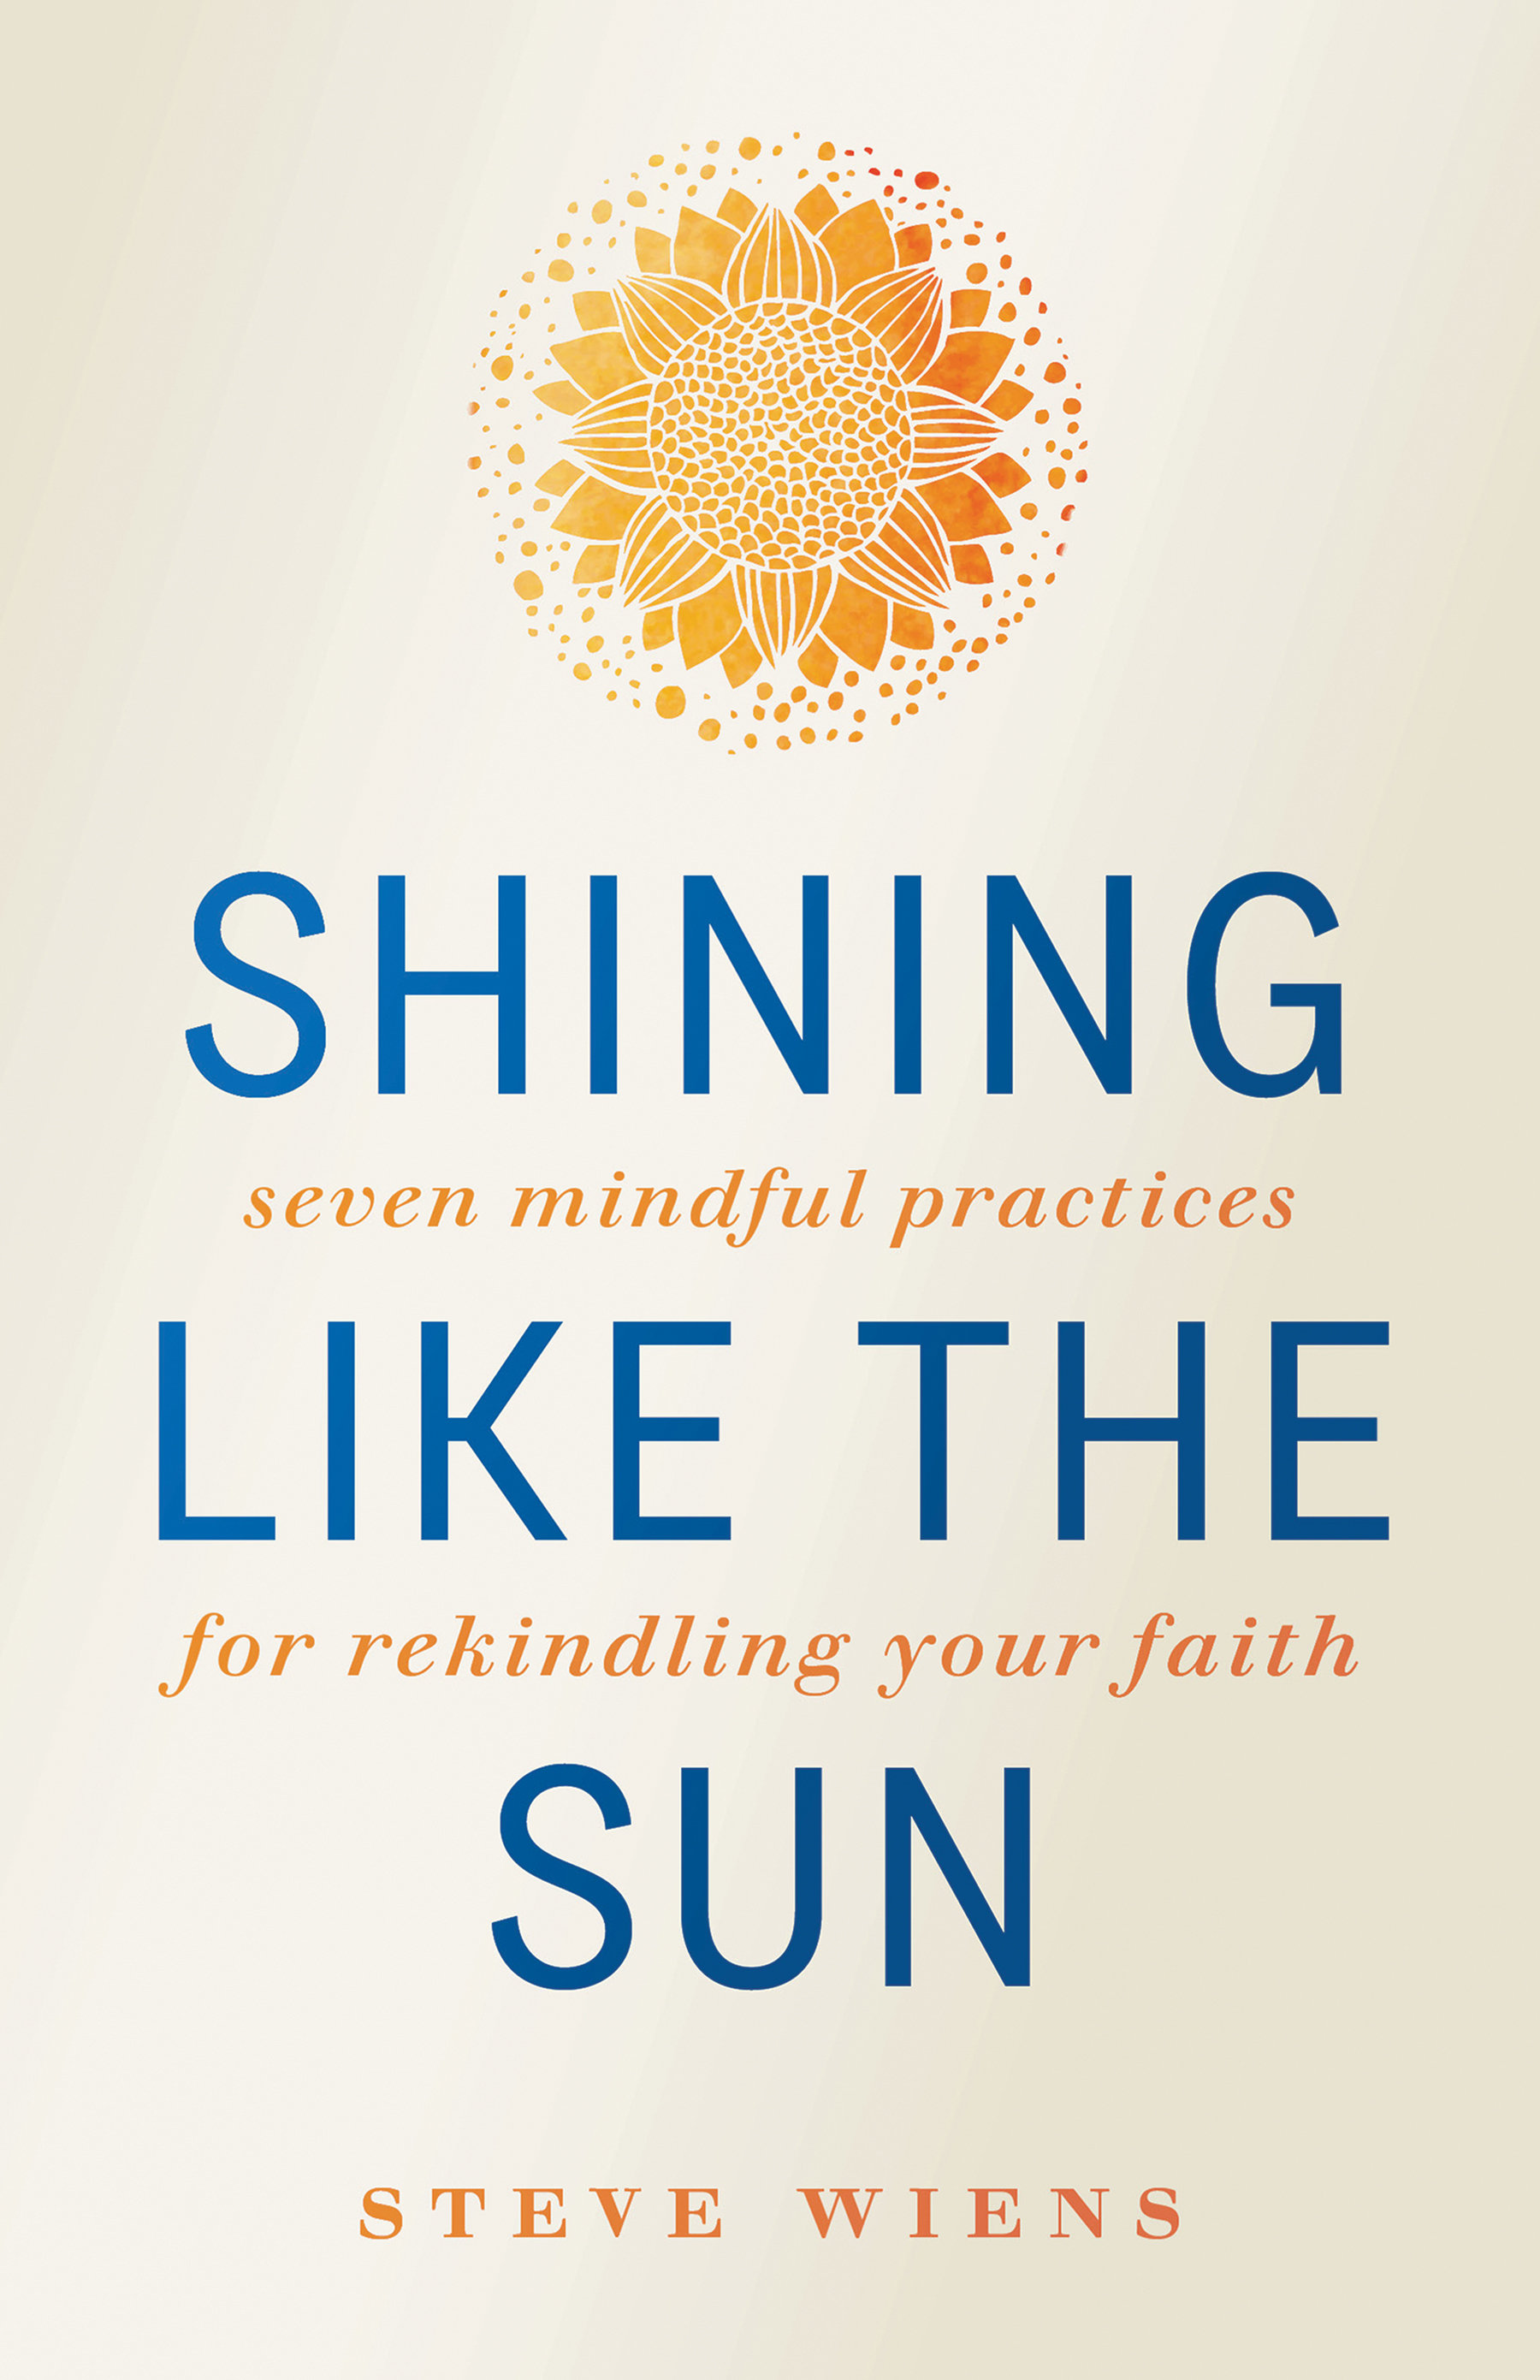 Shining like the Sun: Seven Mindful Practices for Rekindling Your Faith